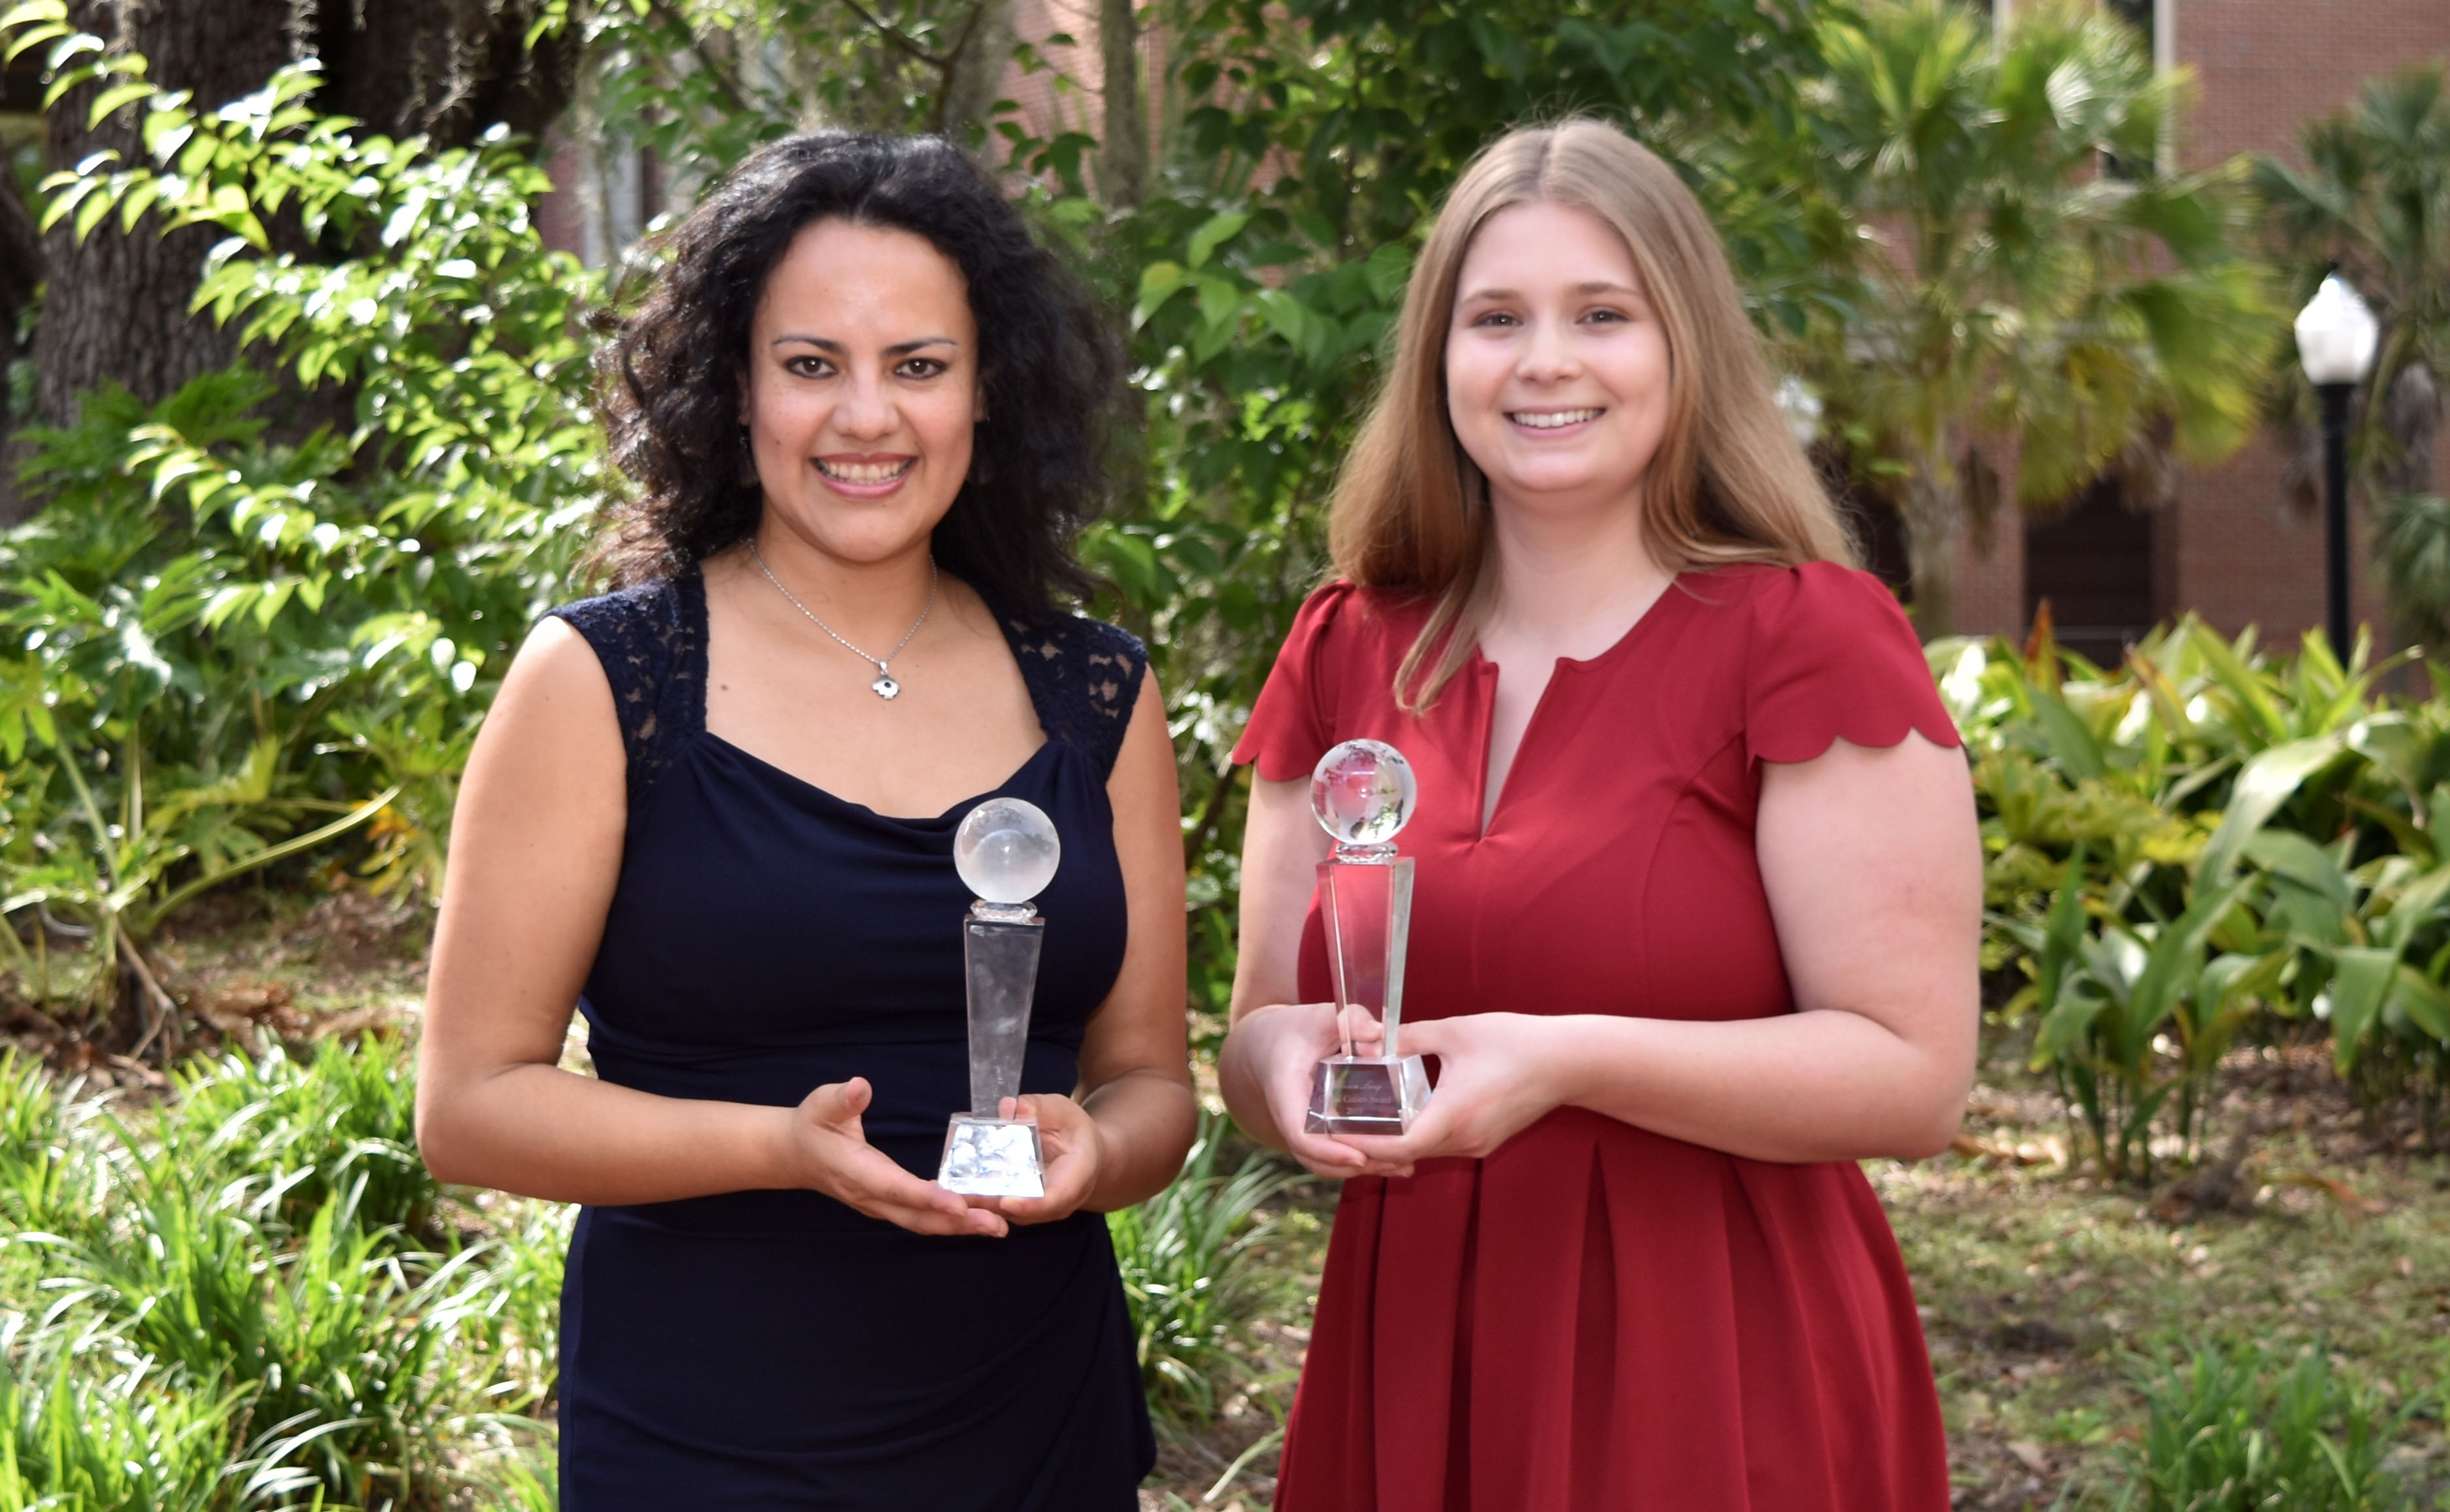 From left: Vivianne Asturizaga and Allison Lang